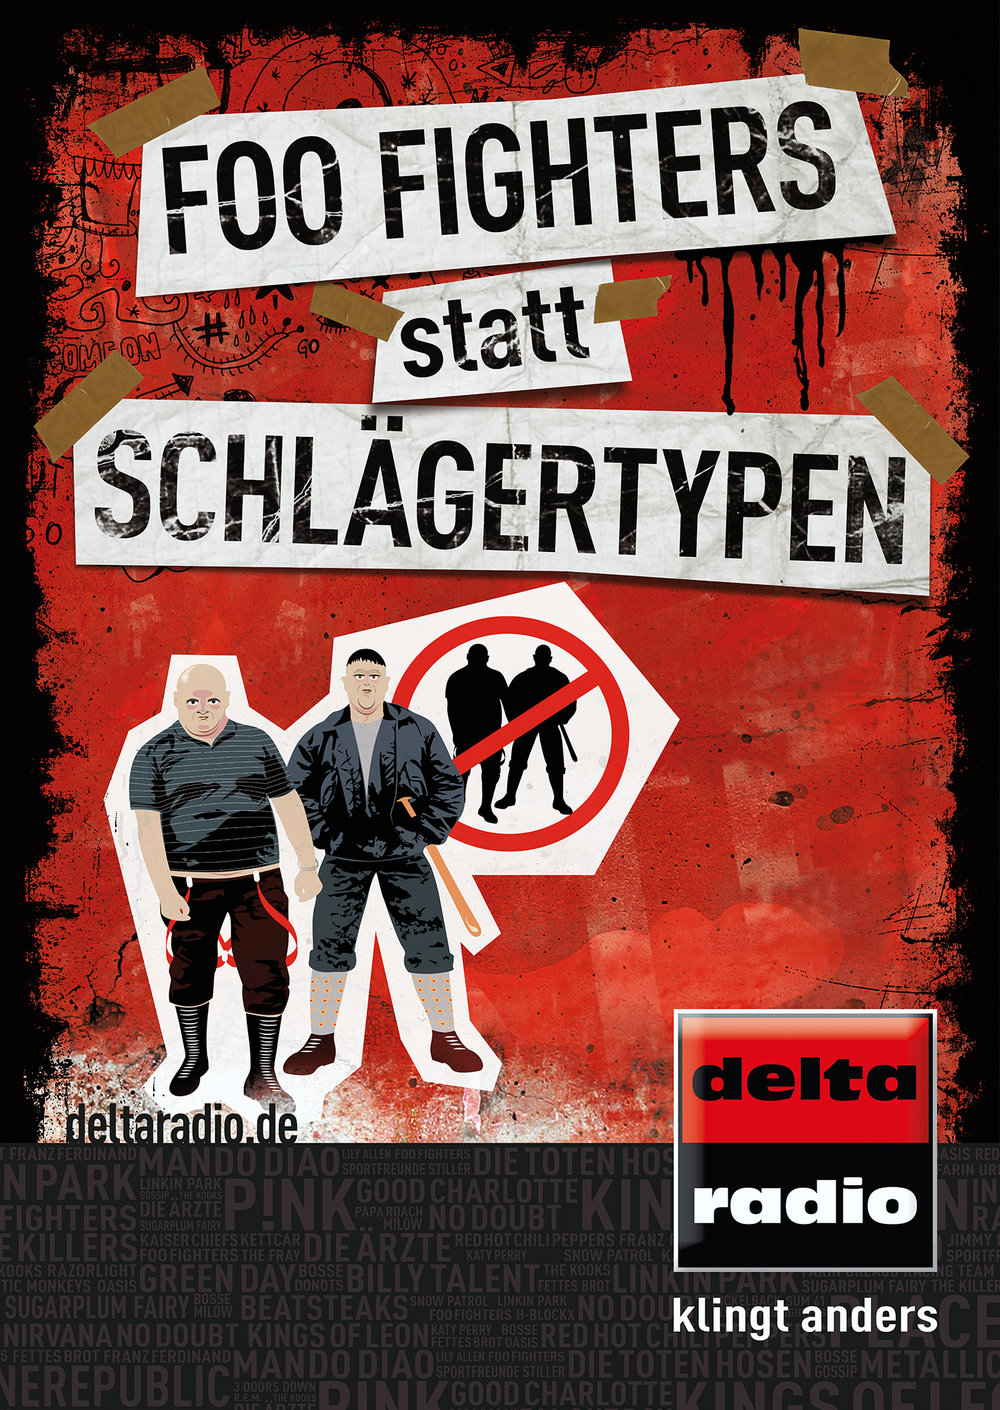 rbtq_Illustration_Seiser_Illustratorin_Hamburg_Editorial_DeltaRadio_FooFighters.jpg